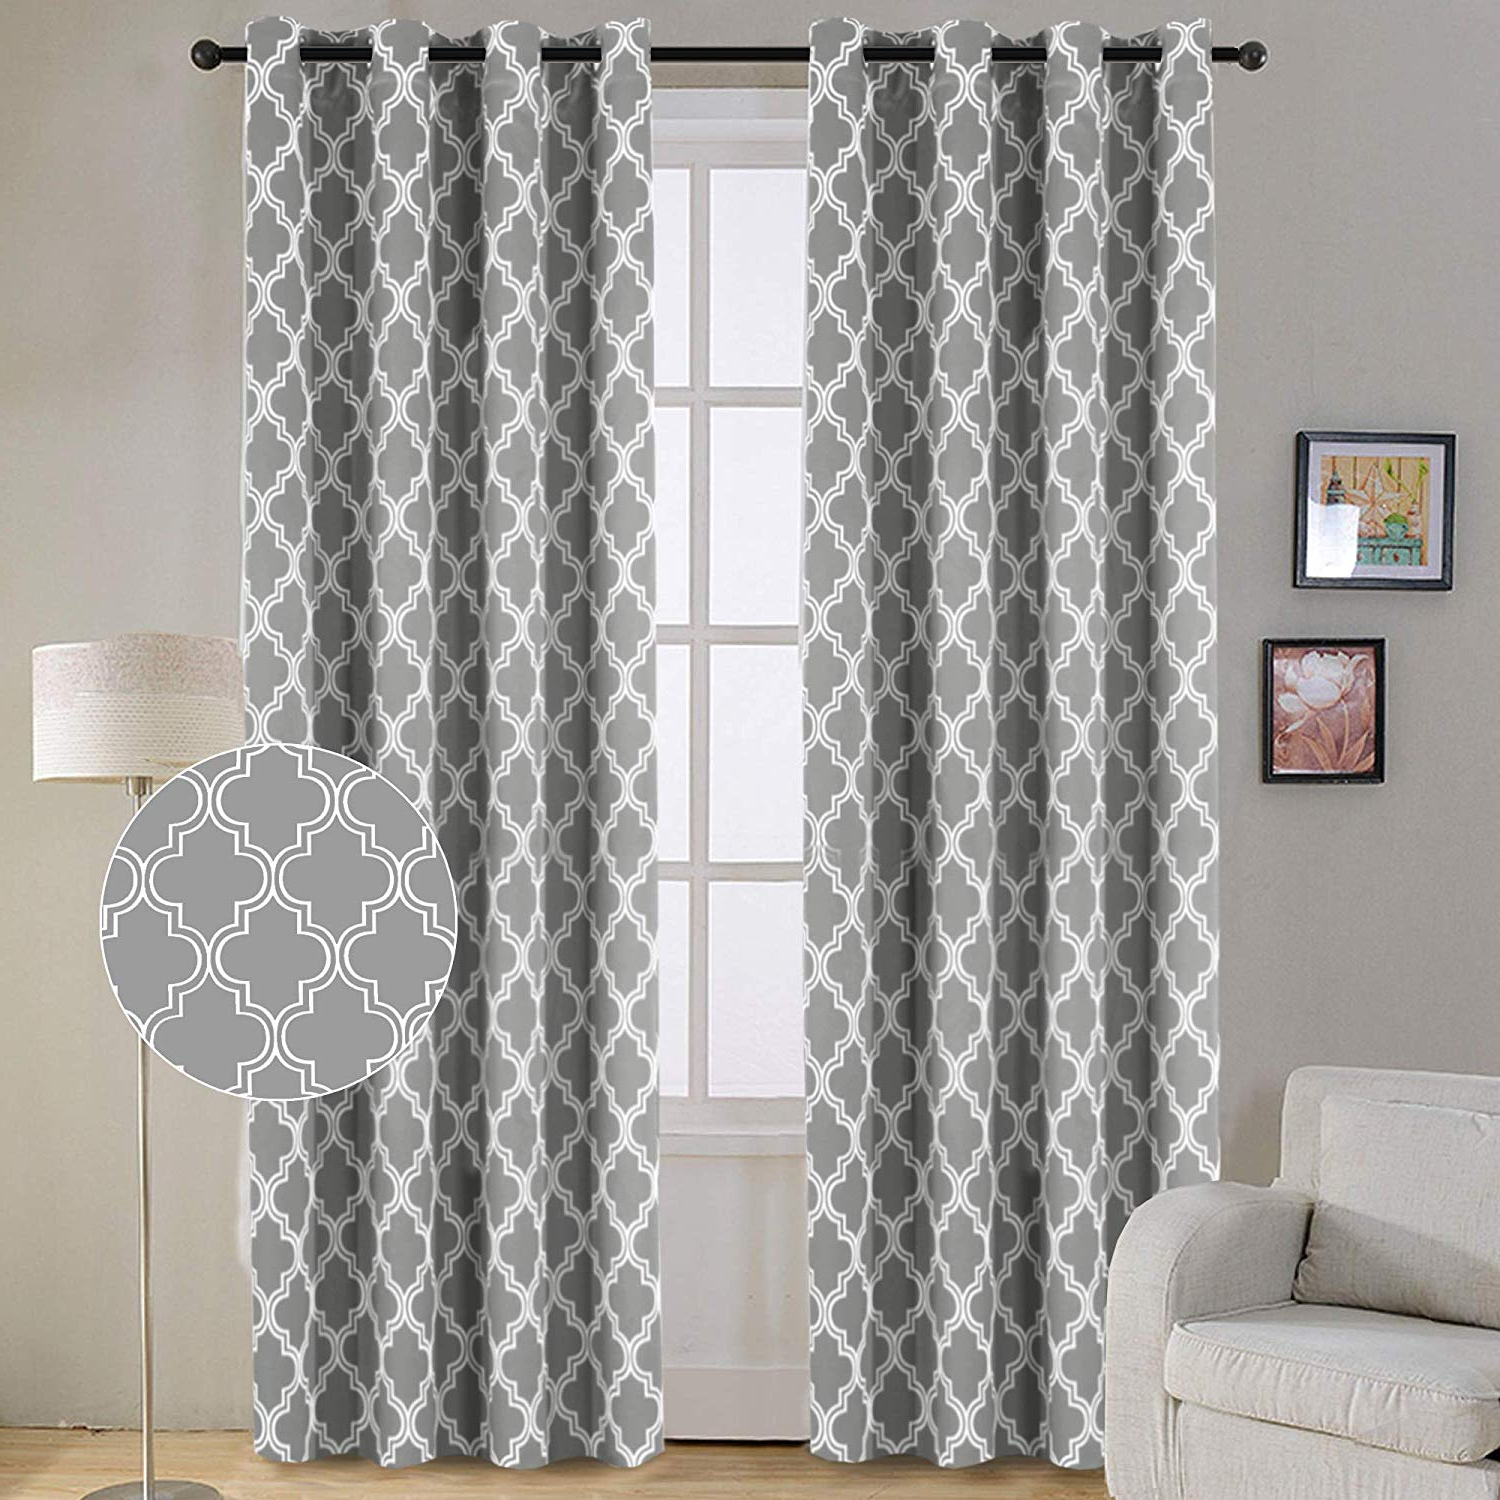 Flamingo P Modern Moroccan Geometric Decor Curtains Print Thermal Insulated Blackout Curtains For Living Room 52w X 84l Inch Gray 1 Pair With Fashionable Geometric Print Textured Thermal Insulated Grommet Curtain Panels (View 7 of 20)